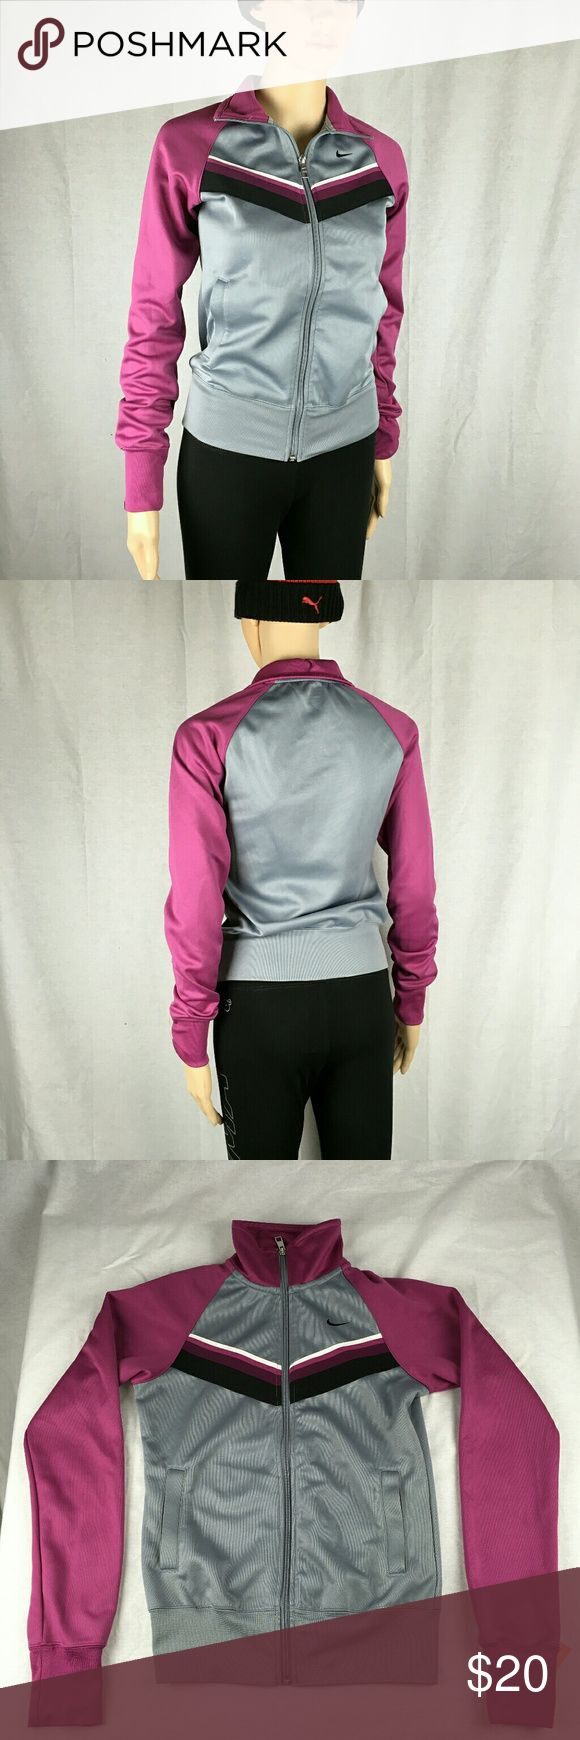 Nike Sports Jacket Excellent condition almost like new.Guaranteed original Brand. Nike Jackets & Coats